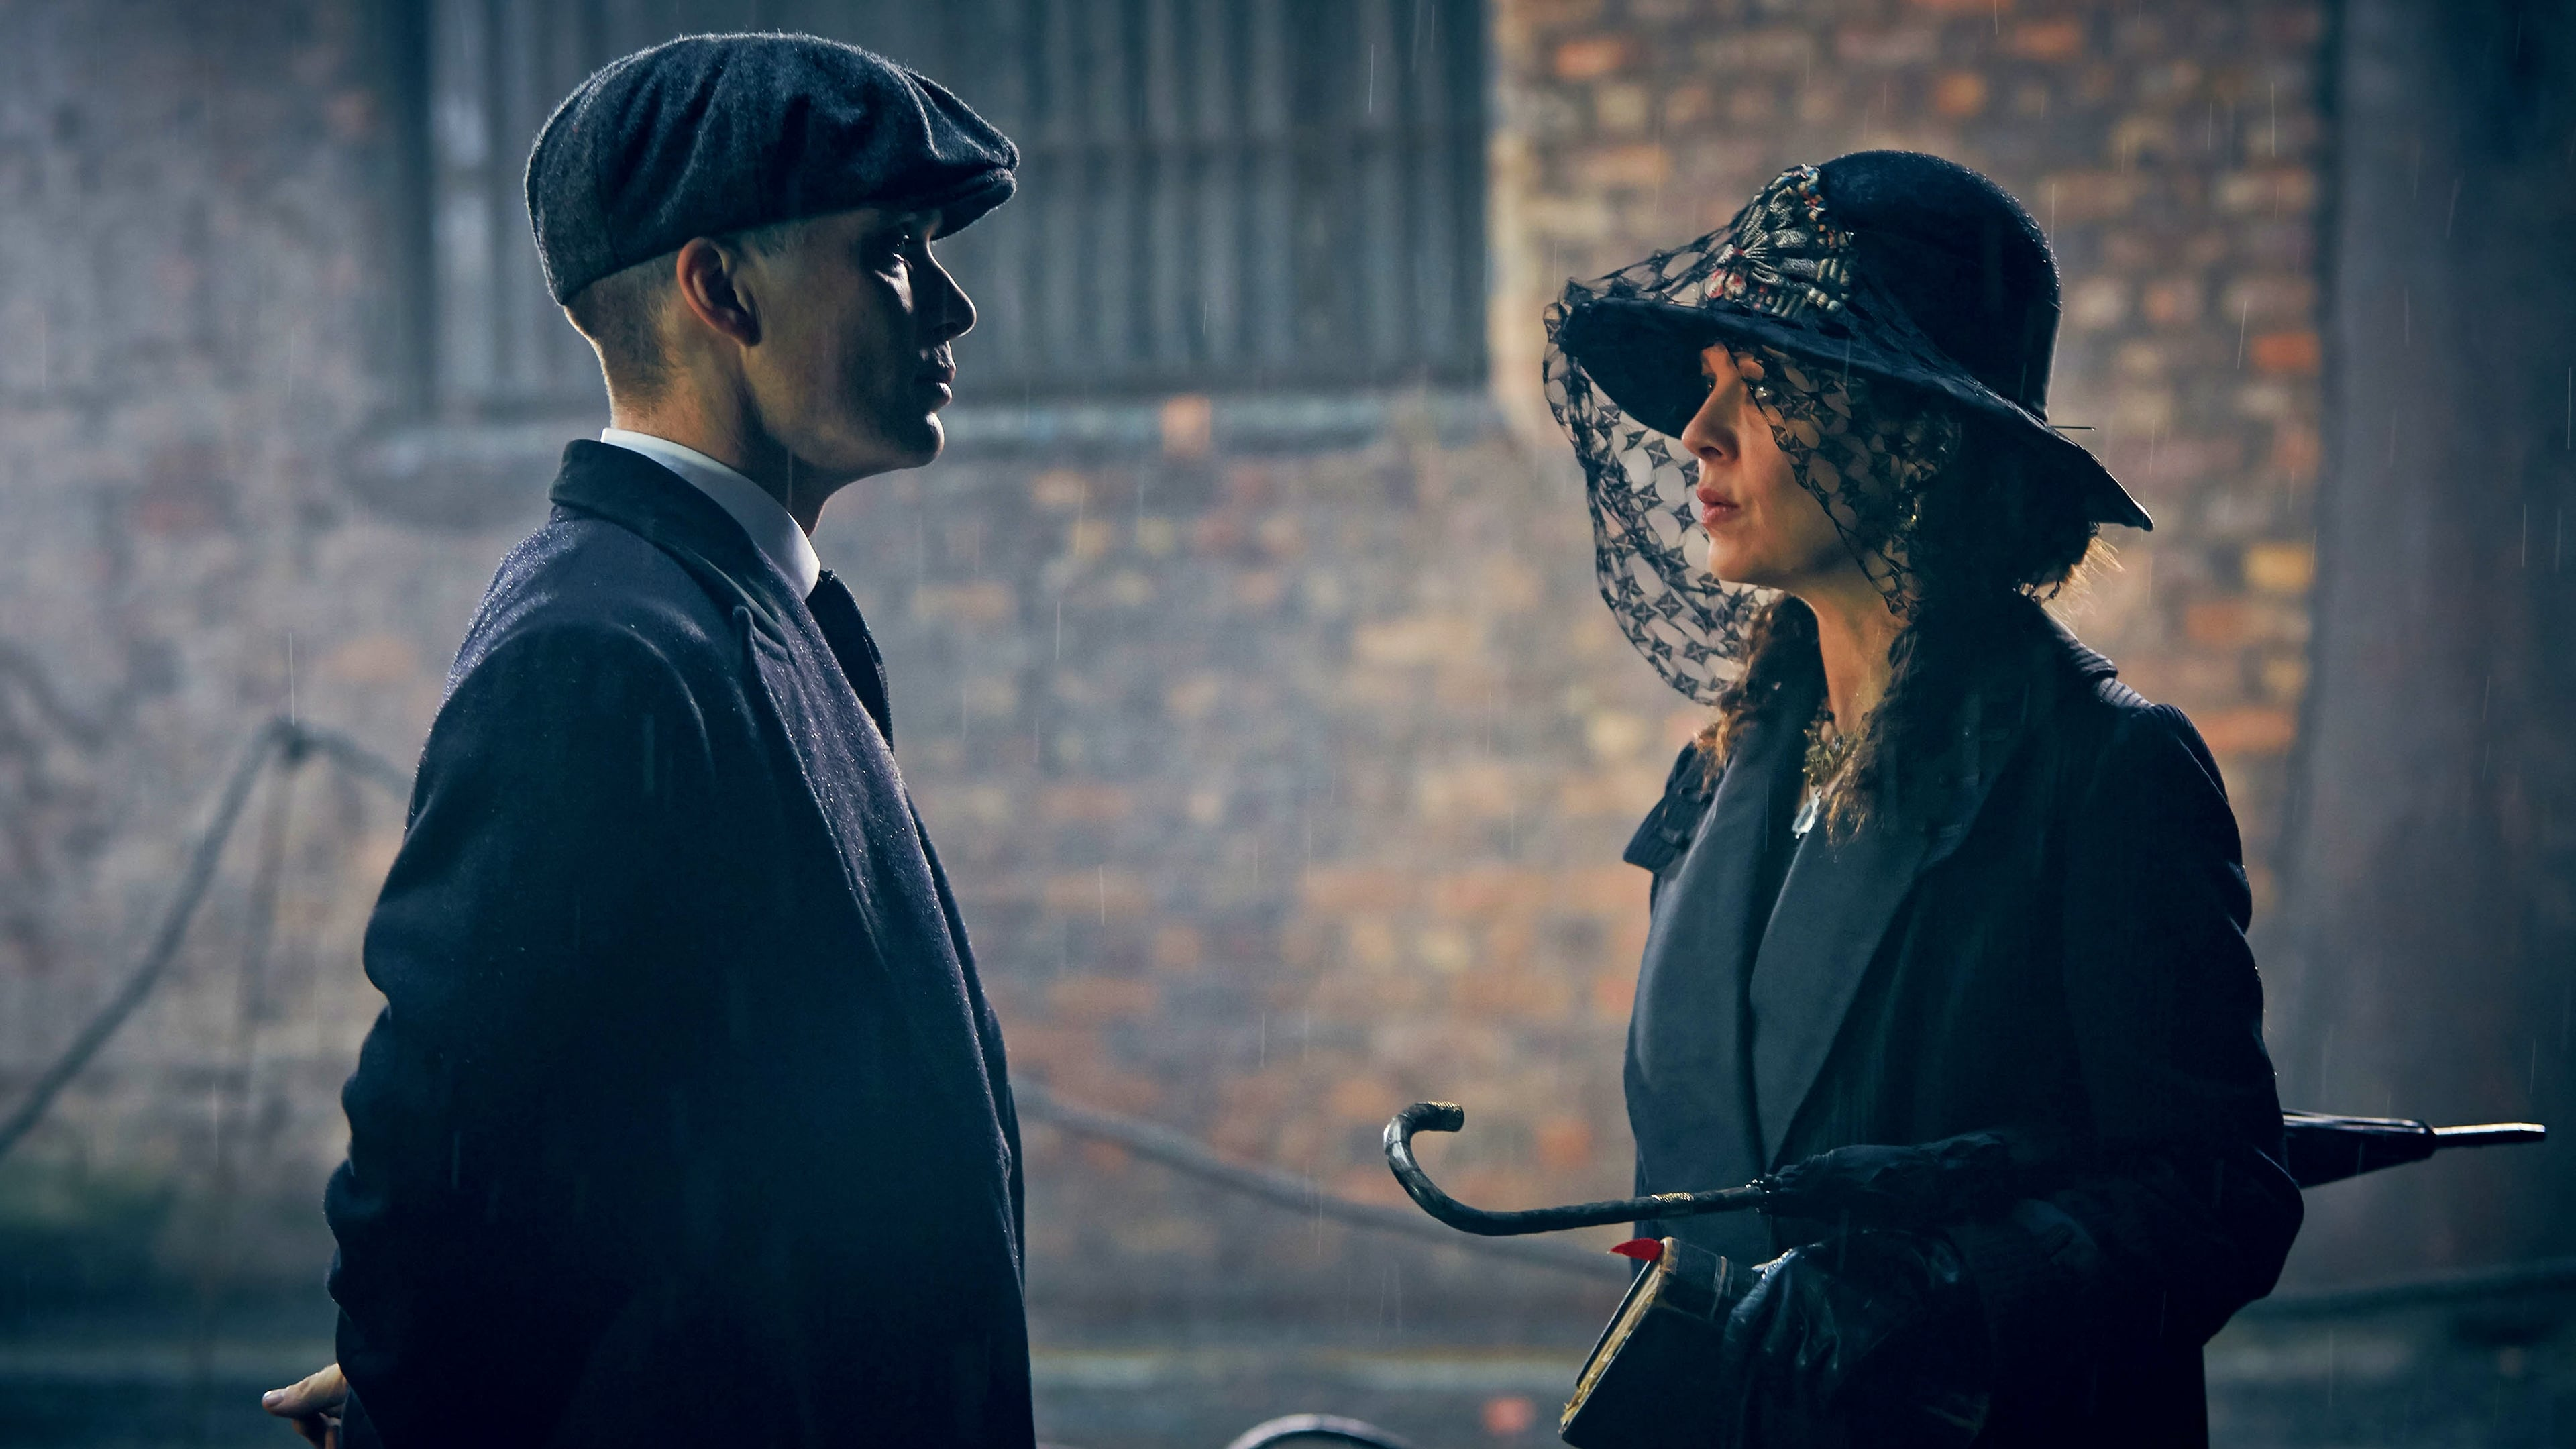 Peaky Blinders S1E1 - Episode 1 - Watch for free | SoyaTV